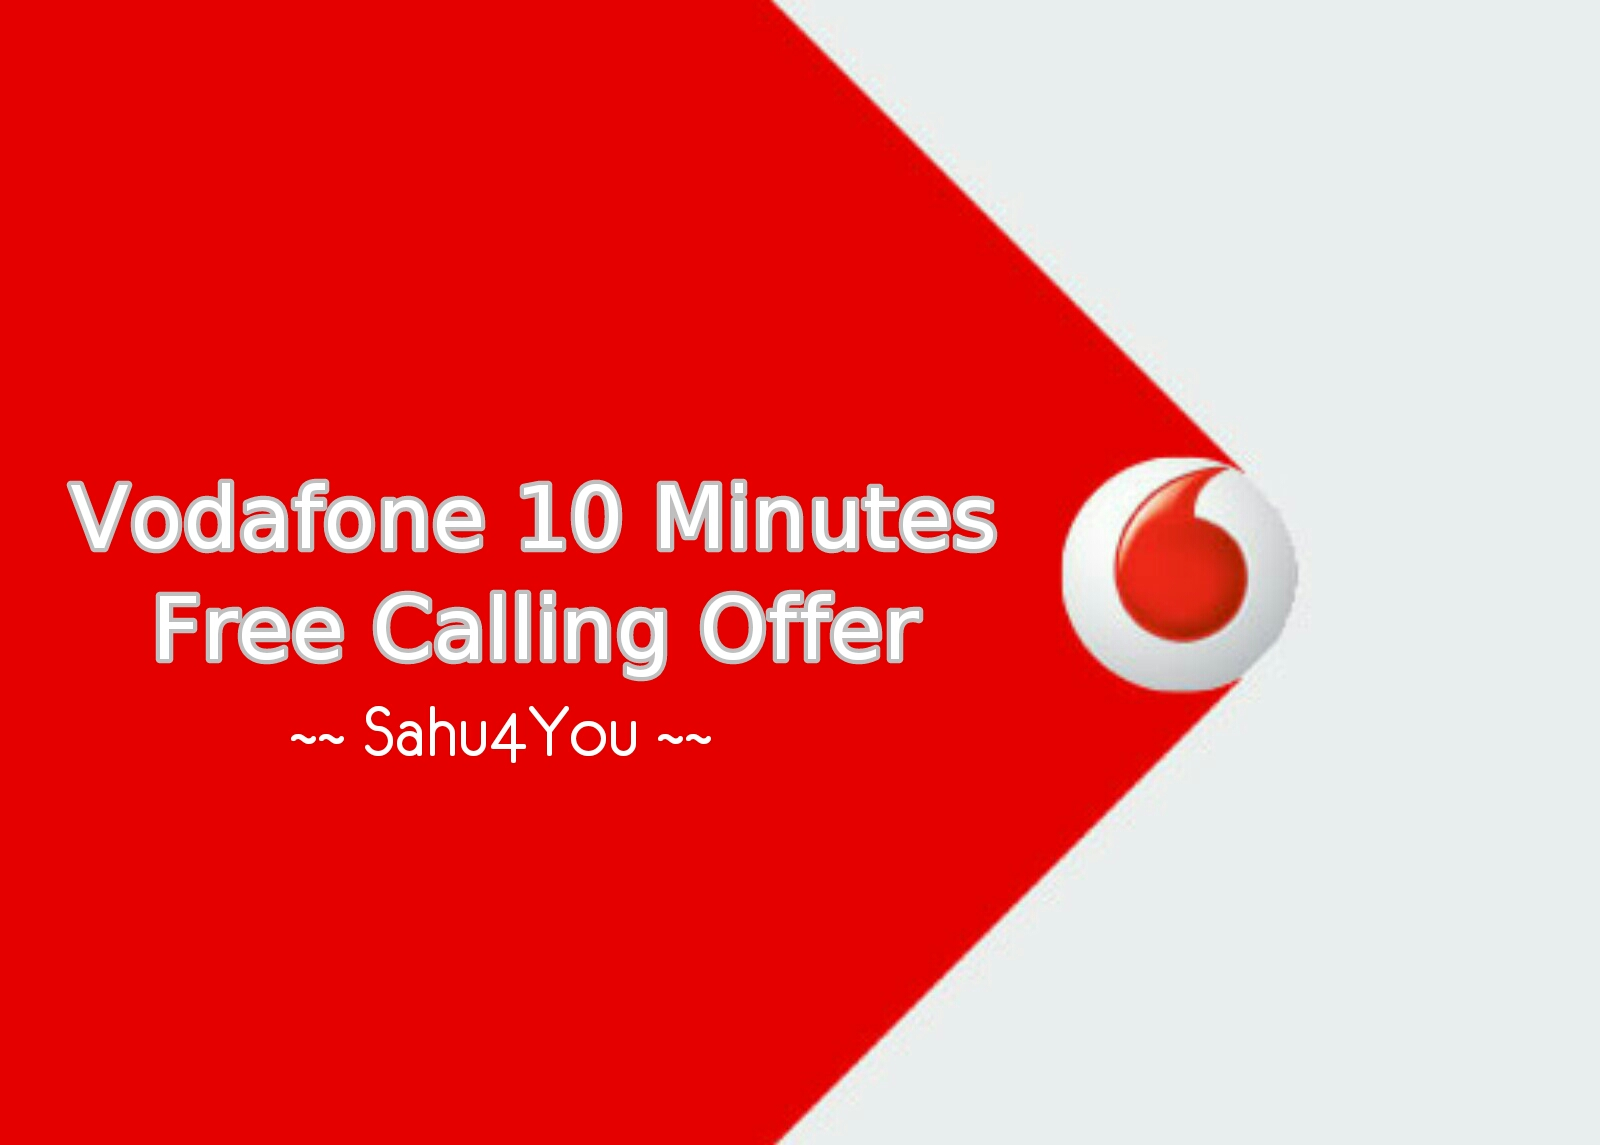 How To Get 10 Minutes Free Calling In Vodafone